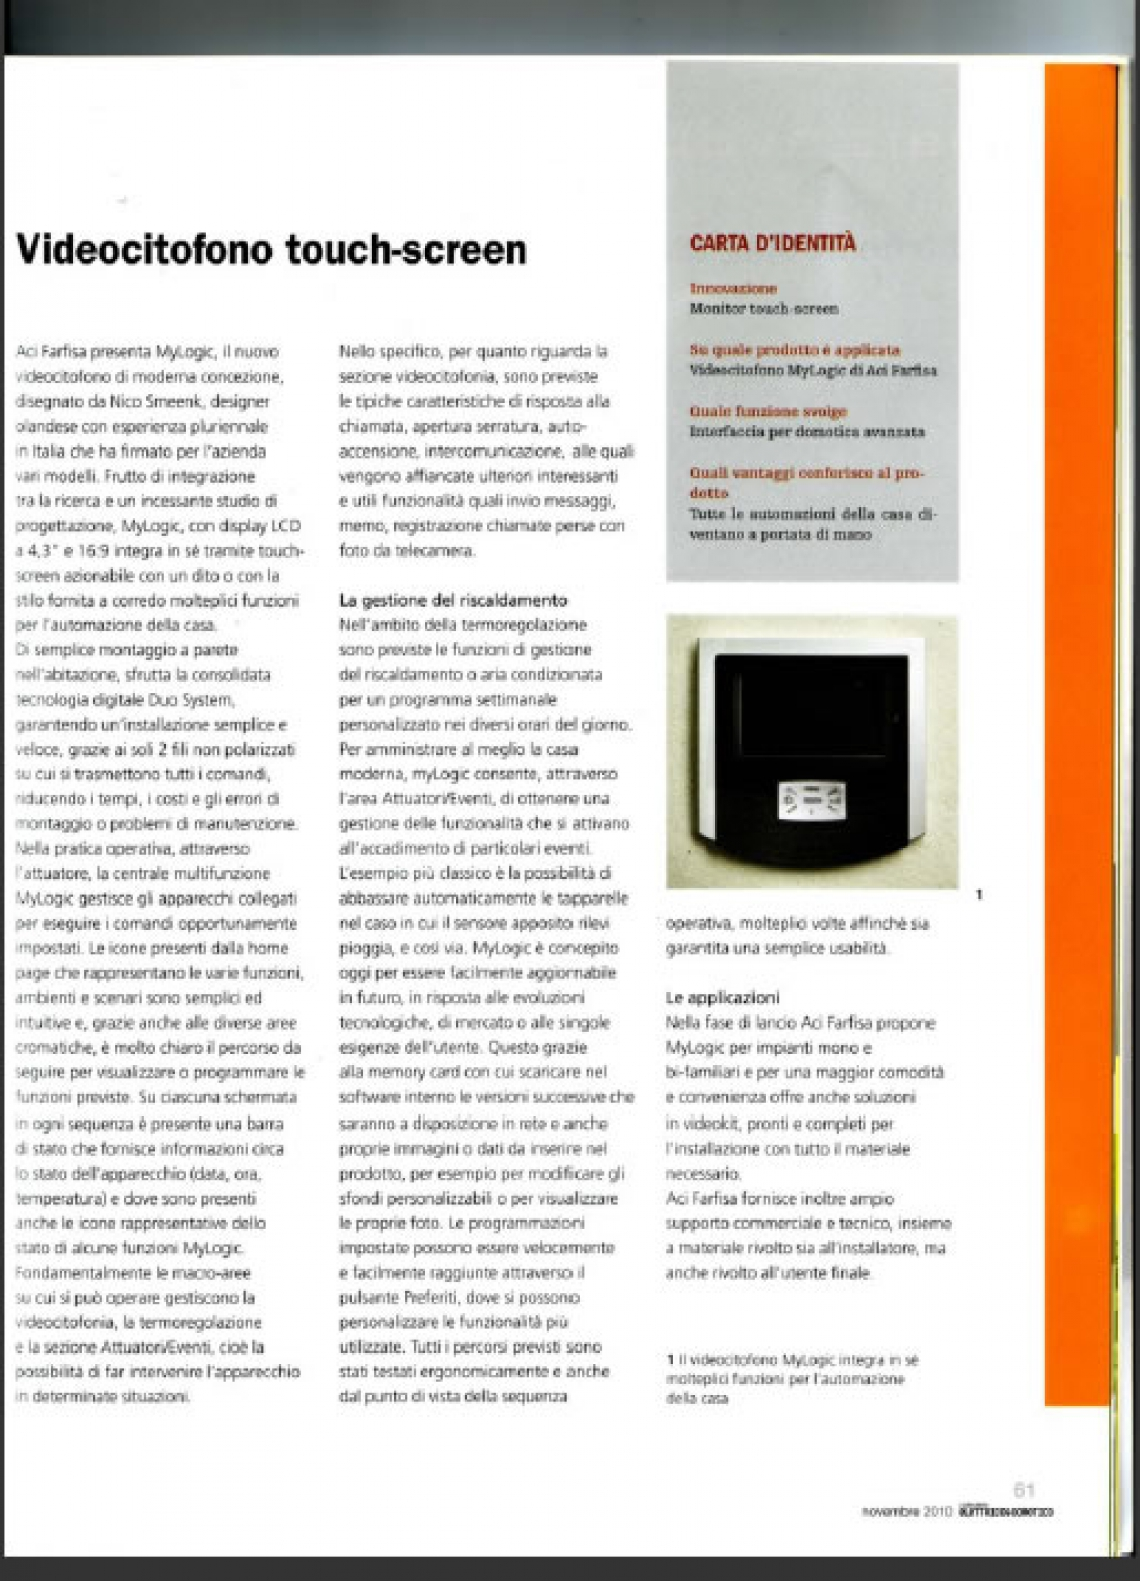 myLogic Videocitofono touch-screen